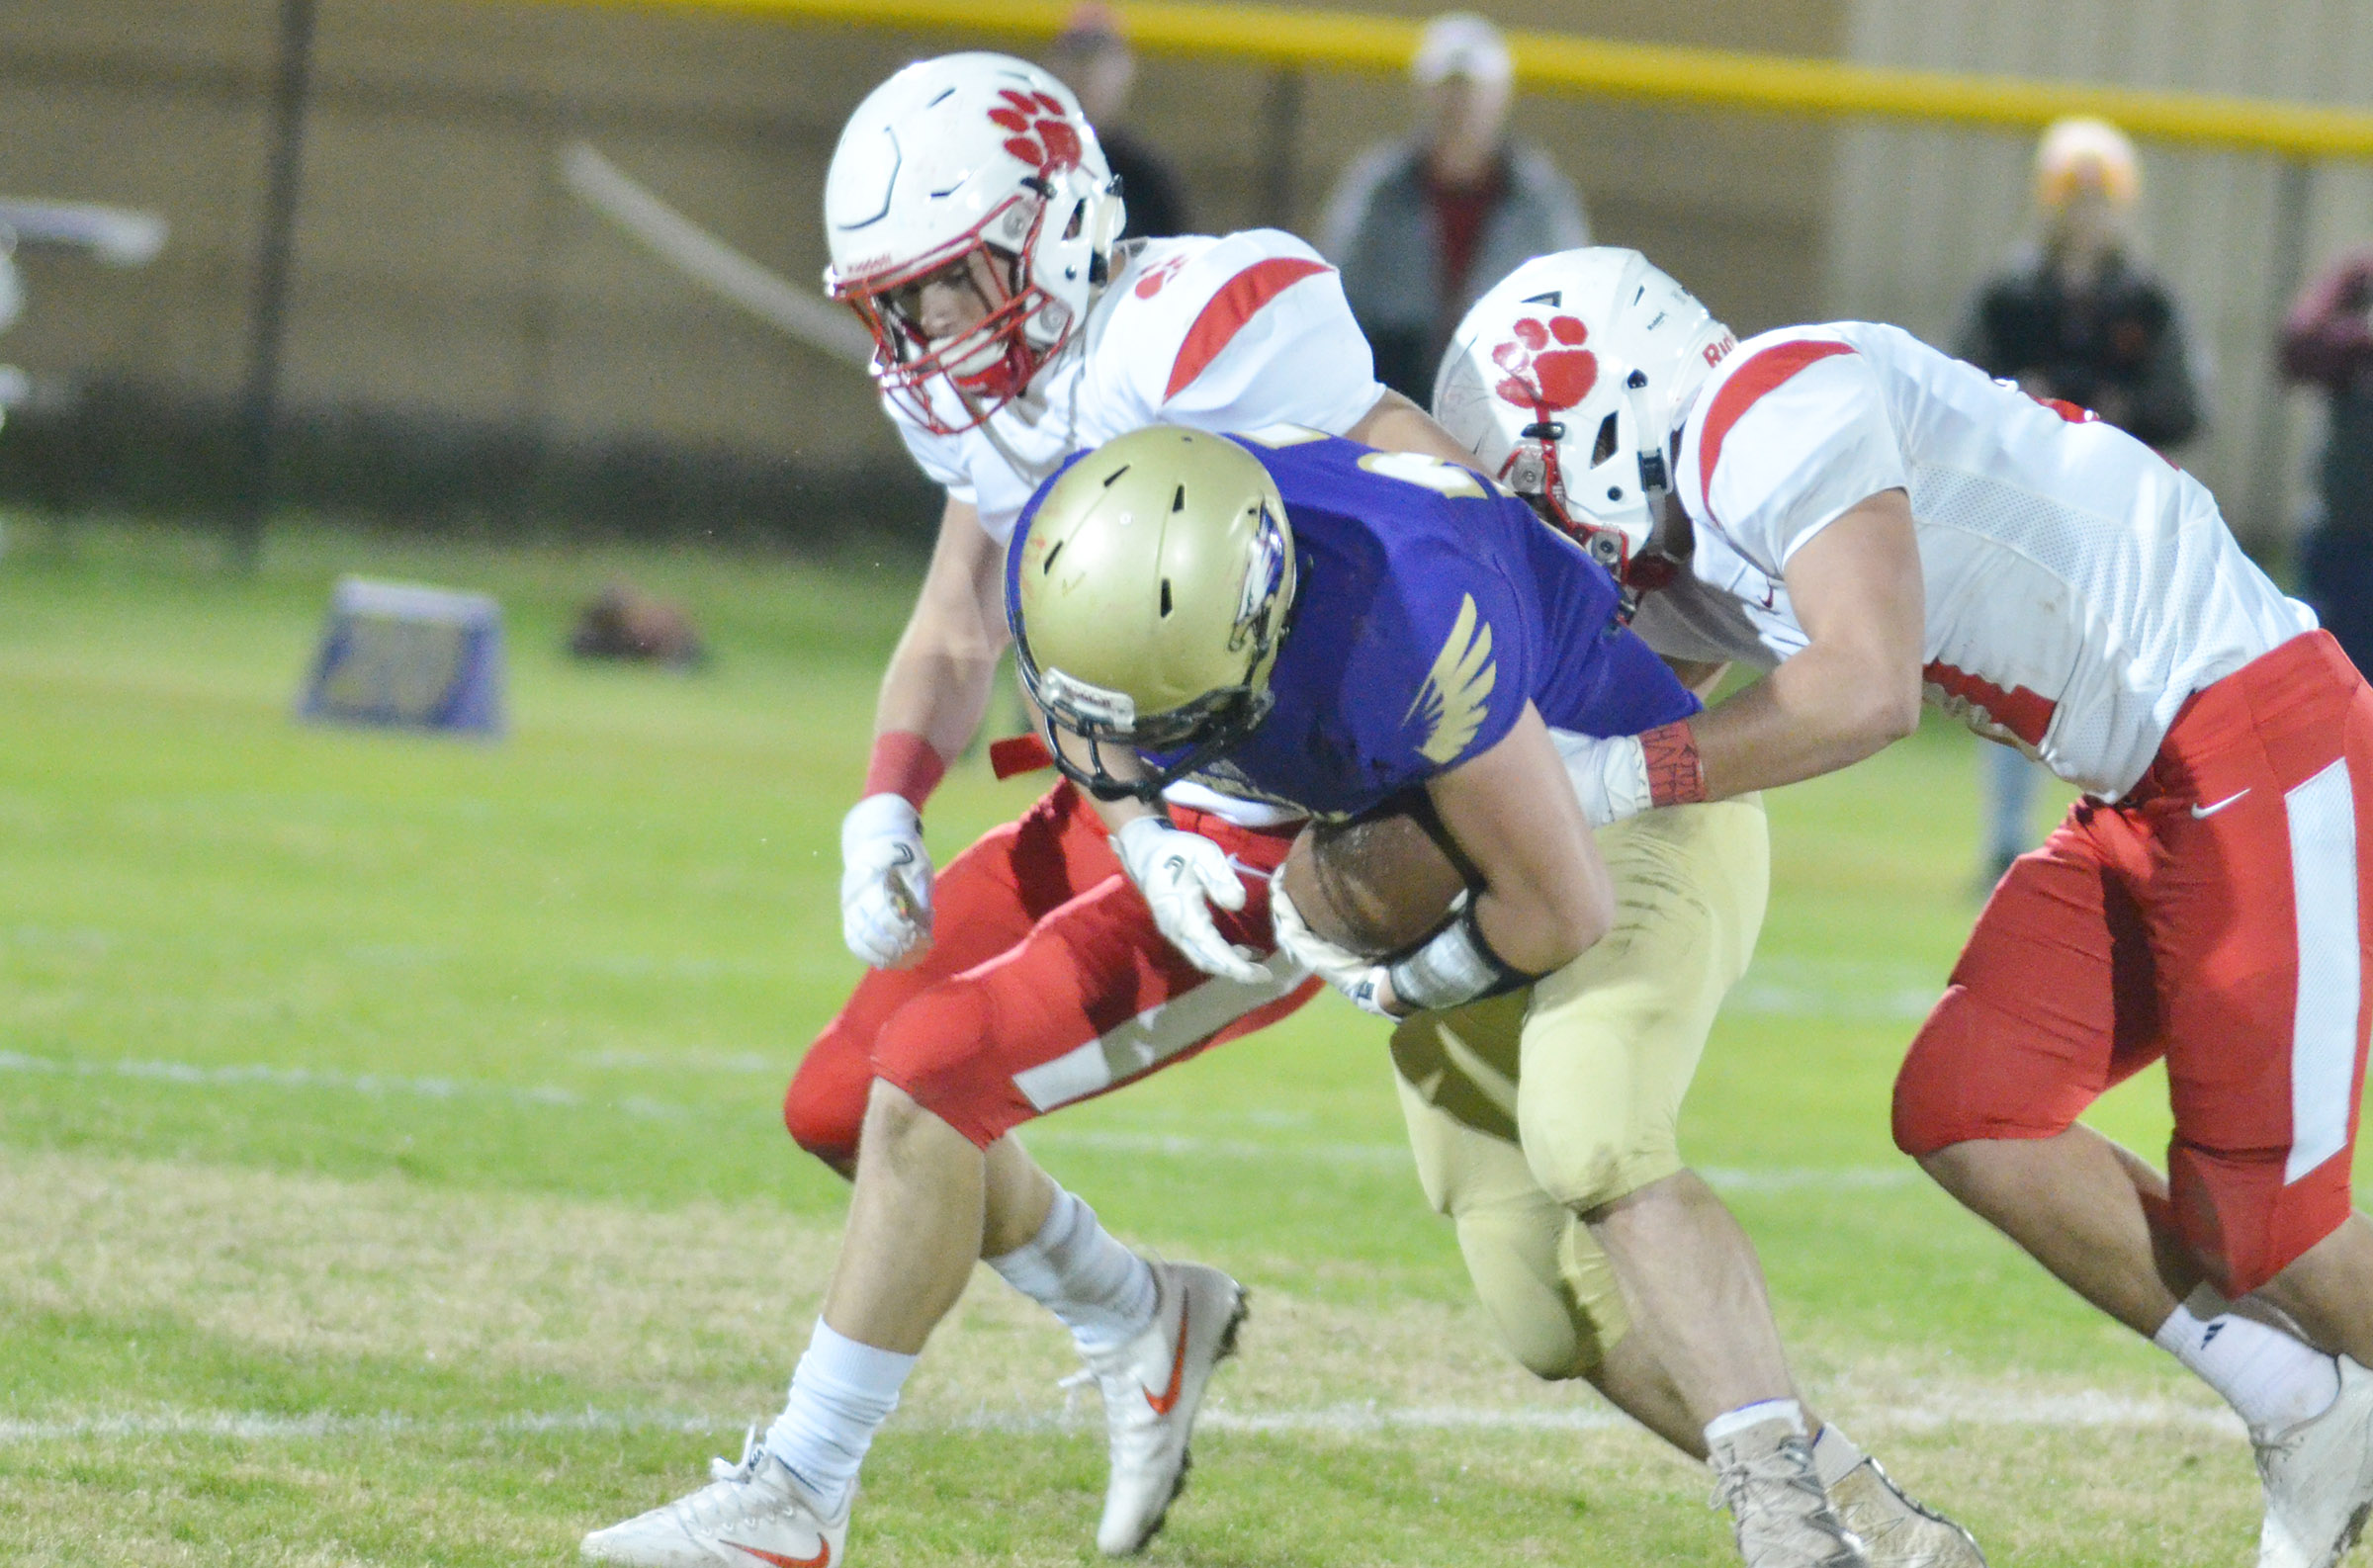 CHS junior Dakota Reardon is tackled after catching the ball.